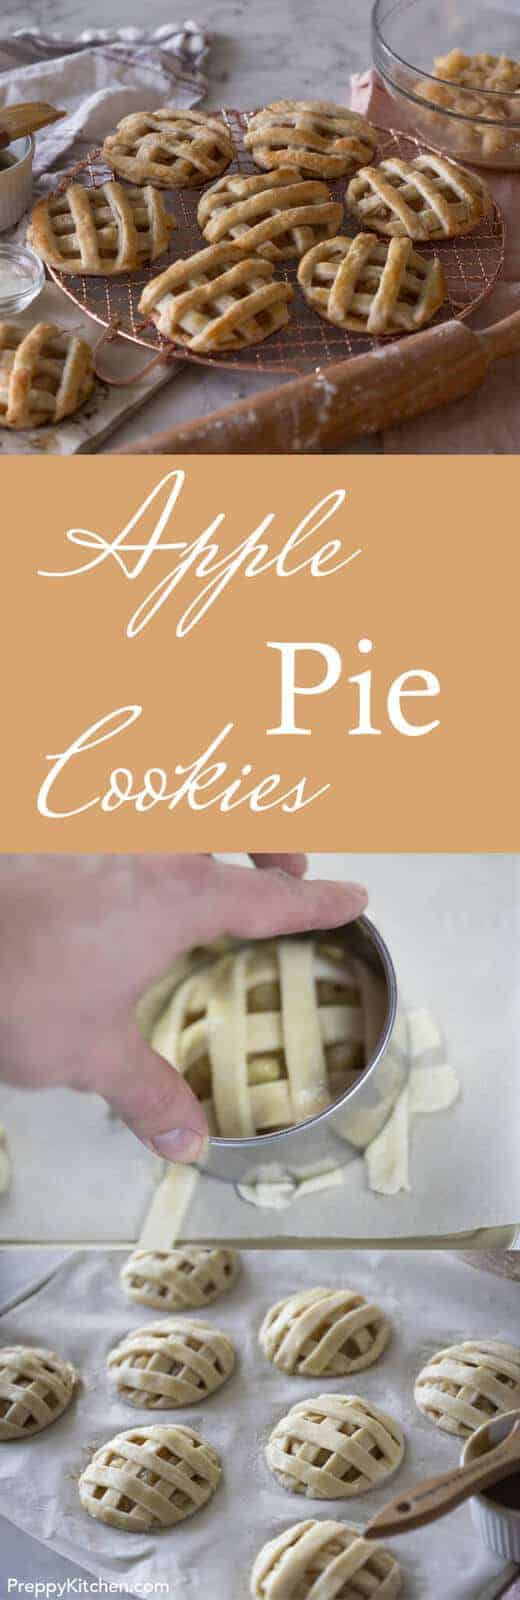 Mini apple pies that fit into your hand! Click over for the full recipe.